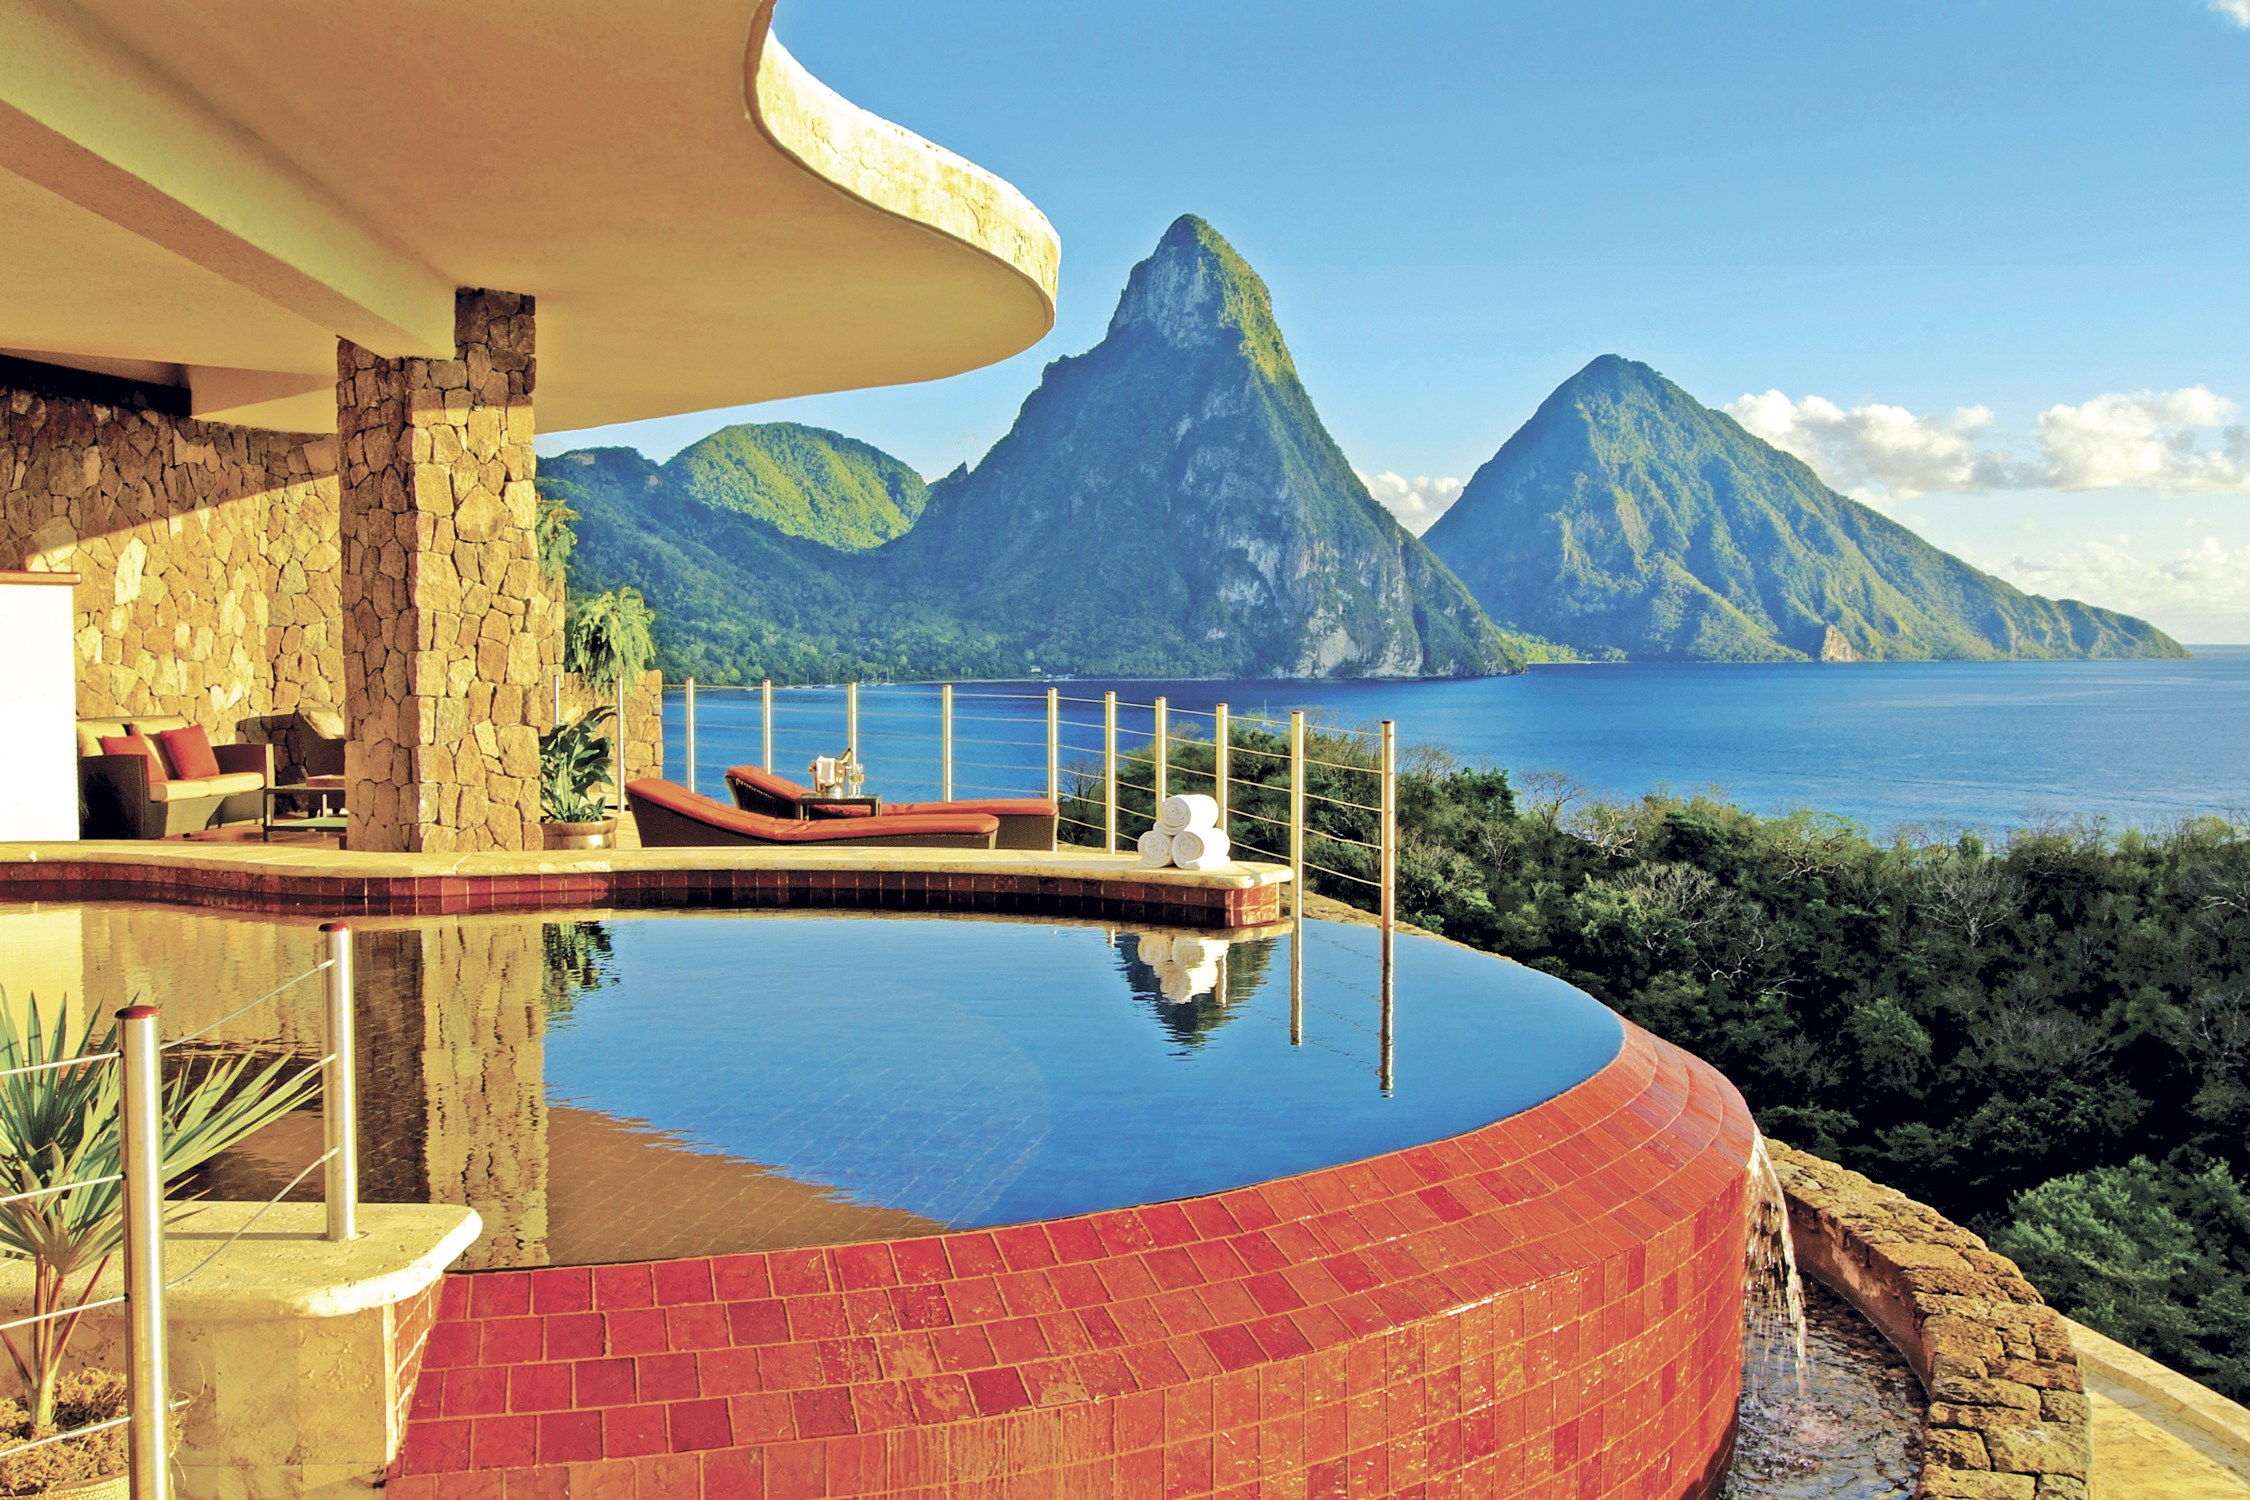 jade-mountain-sun-sanctuary.jpg